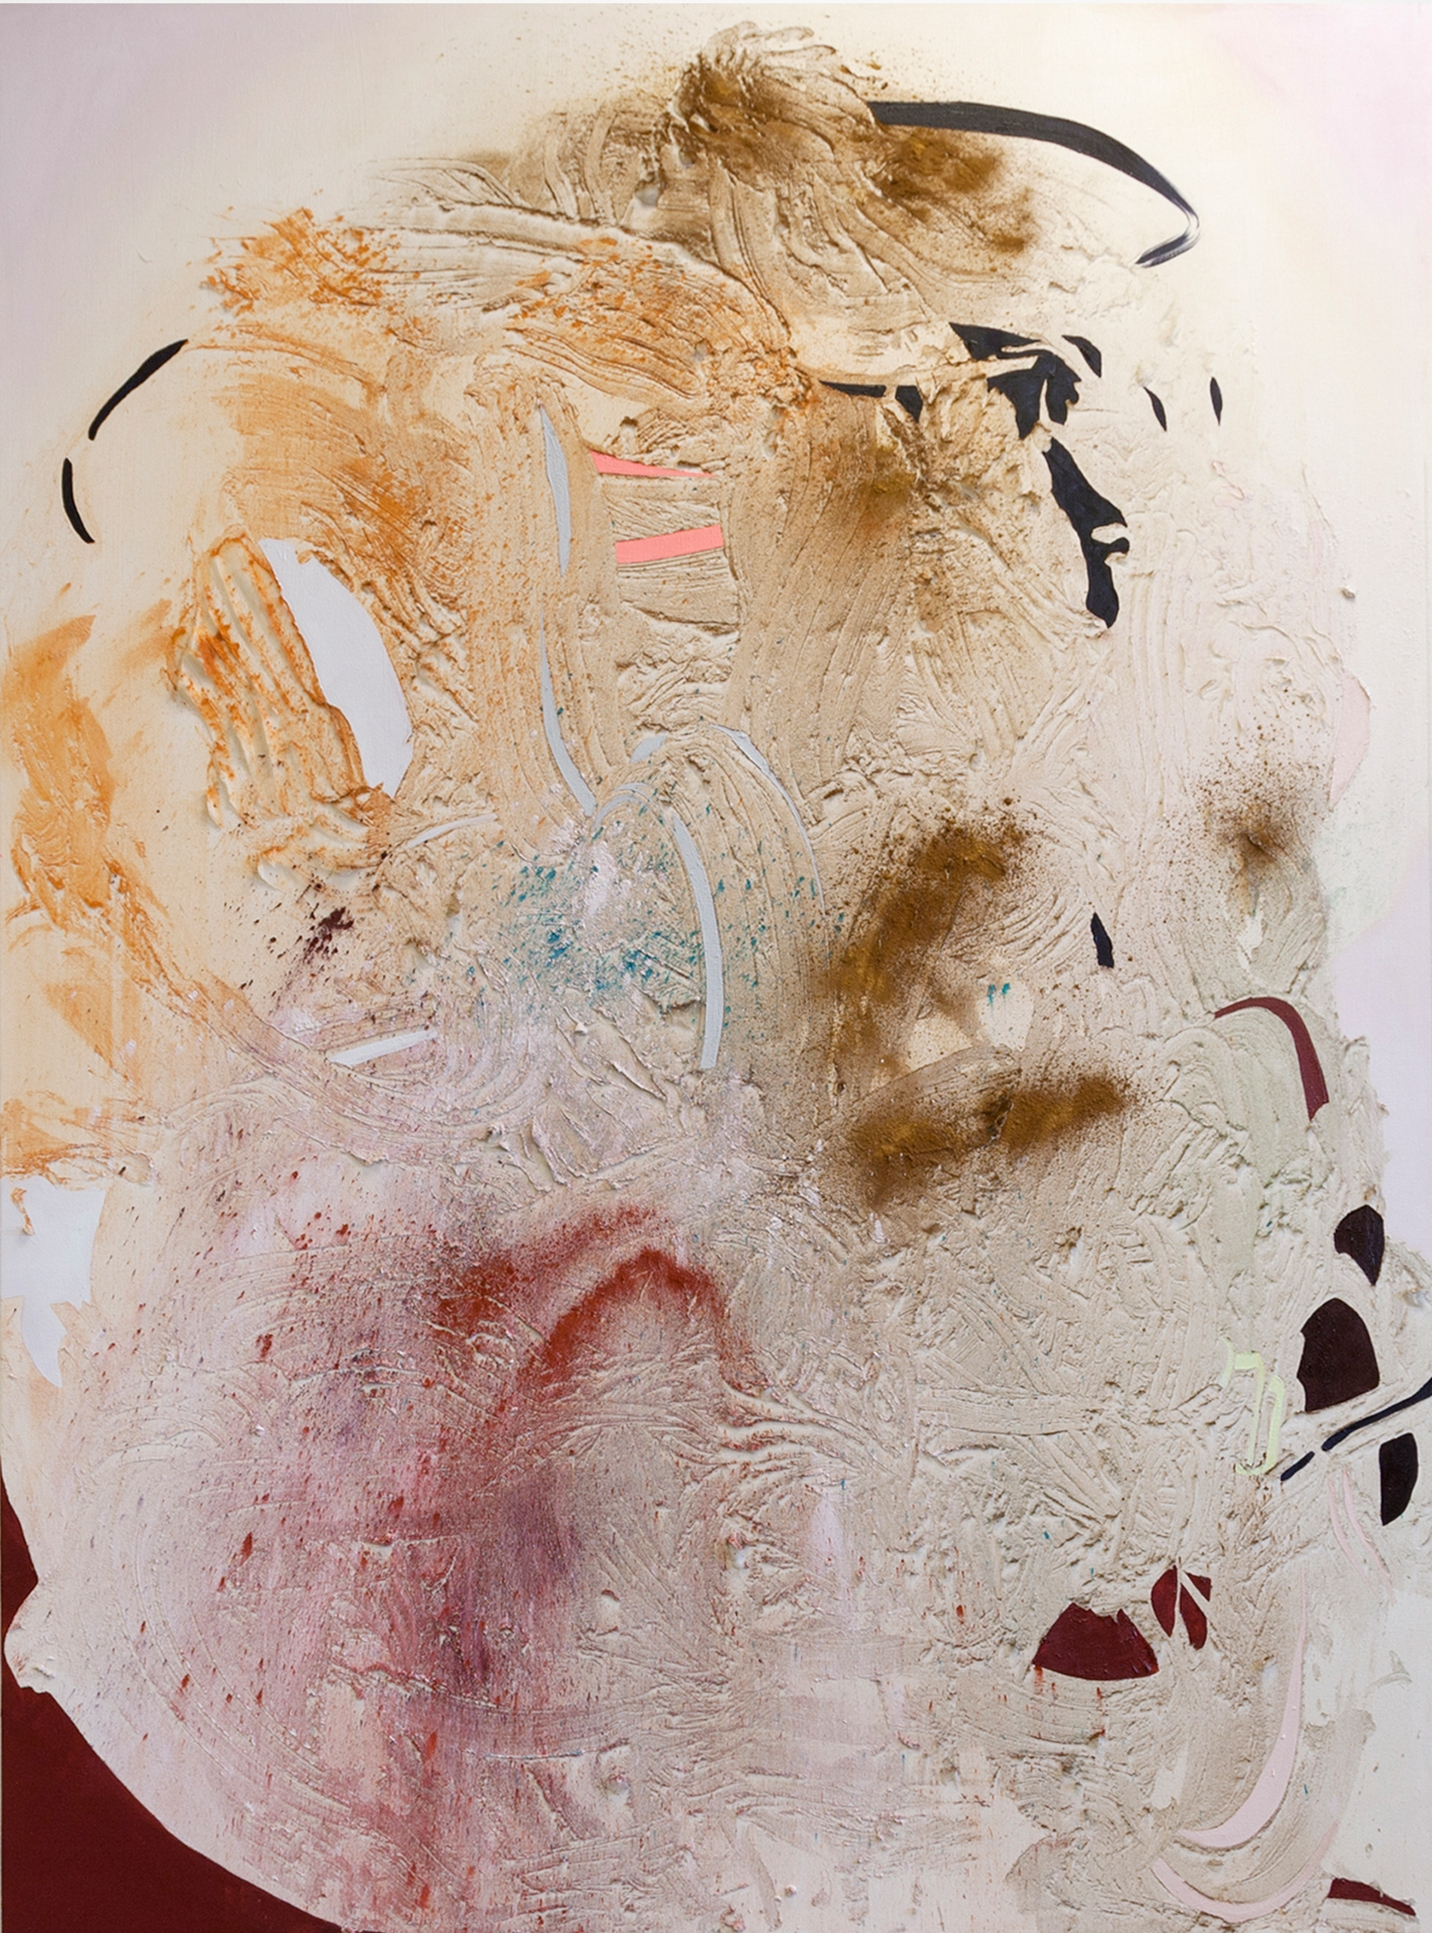 Pink Lake Mica 2, Cold Wax Medium, Raw Pigments, and Oil on Canvas, 7x5 feet, 2016